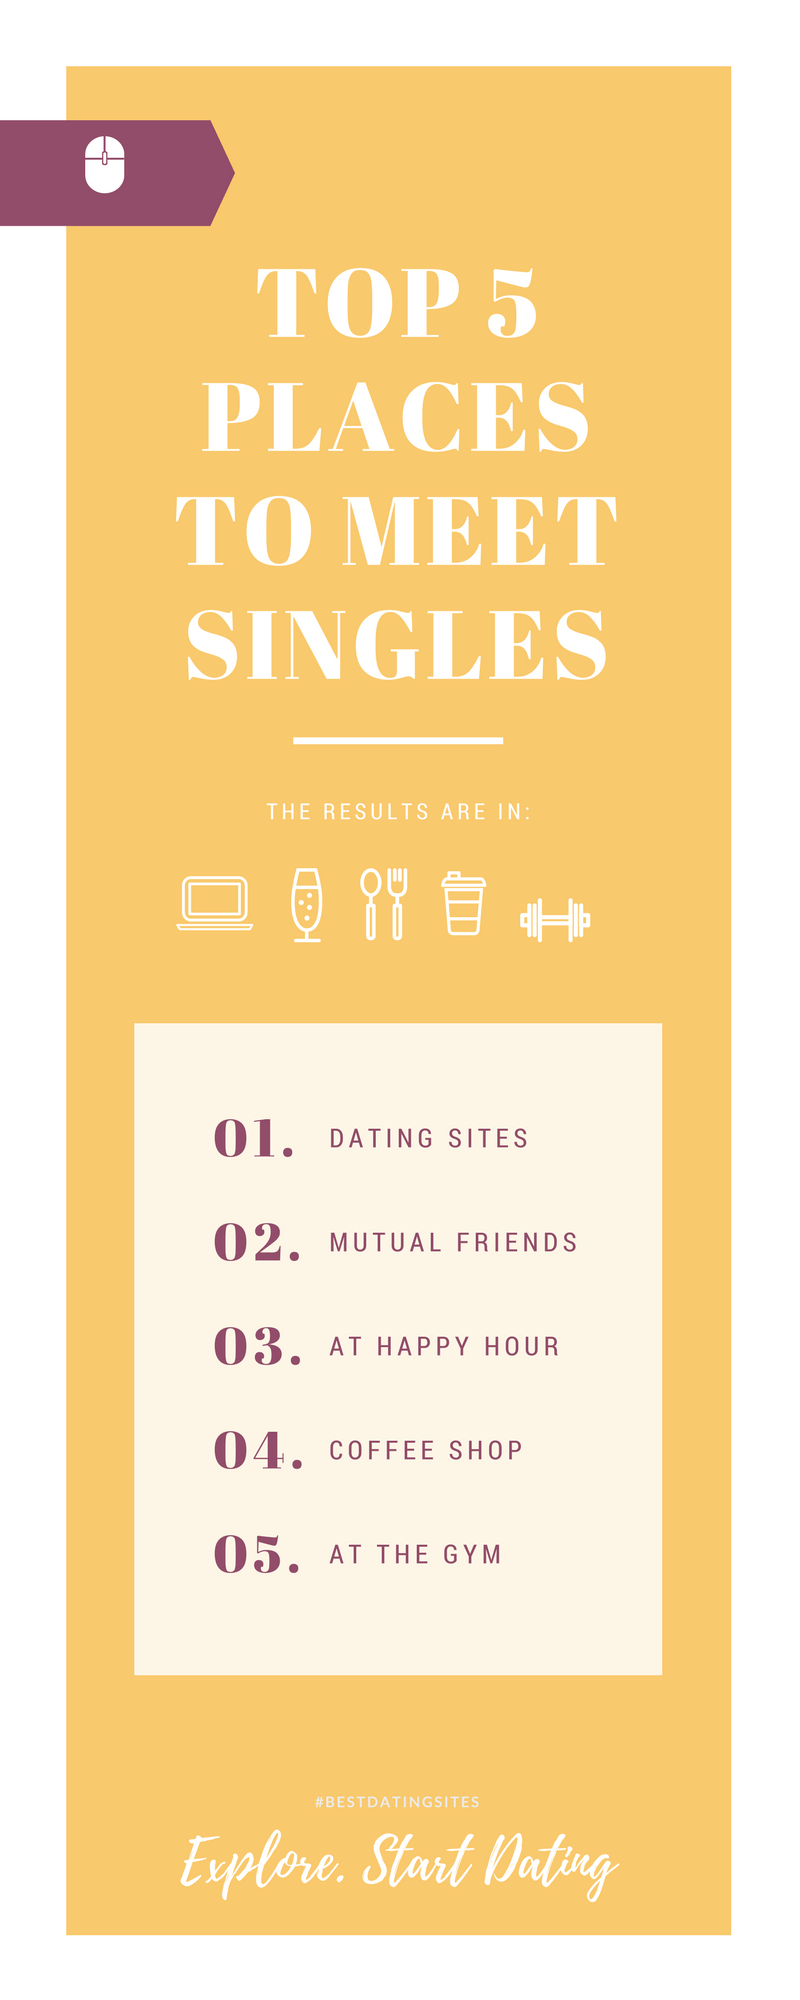 The top 5 places to meet singles [infographic]